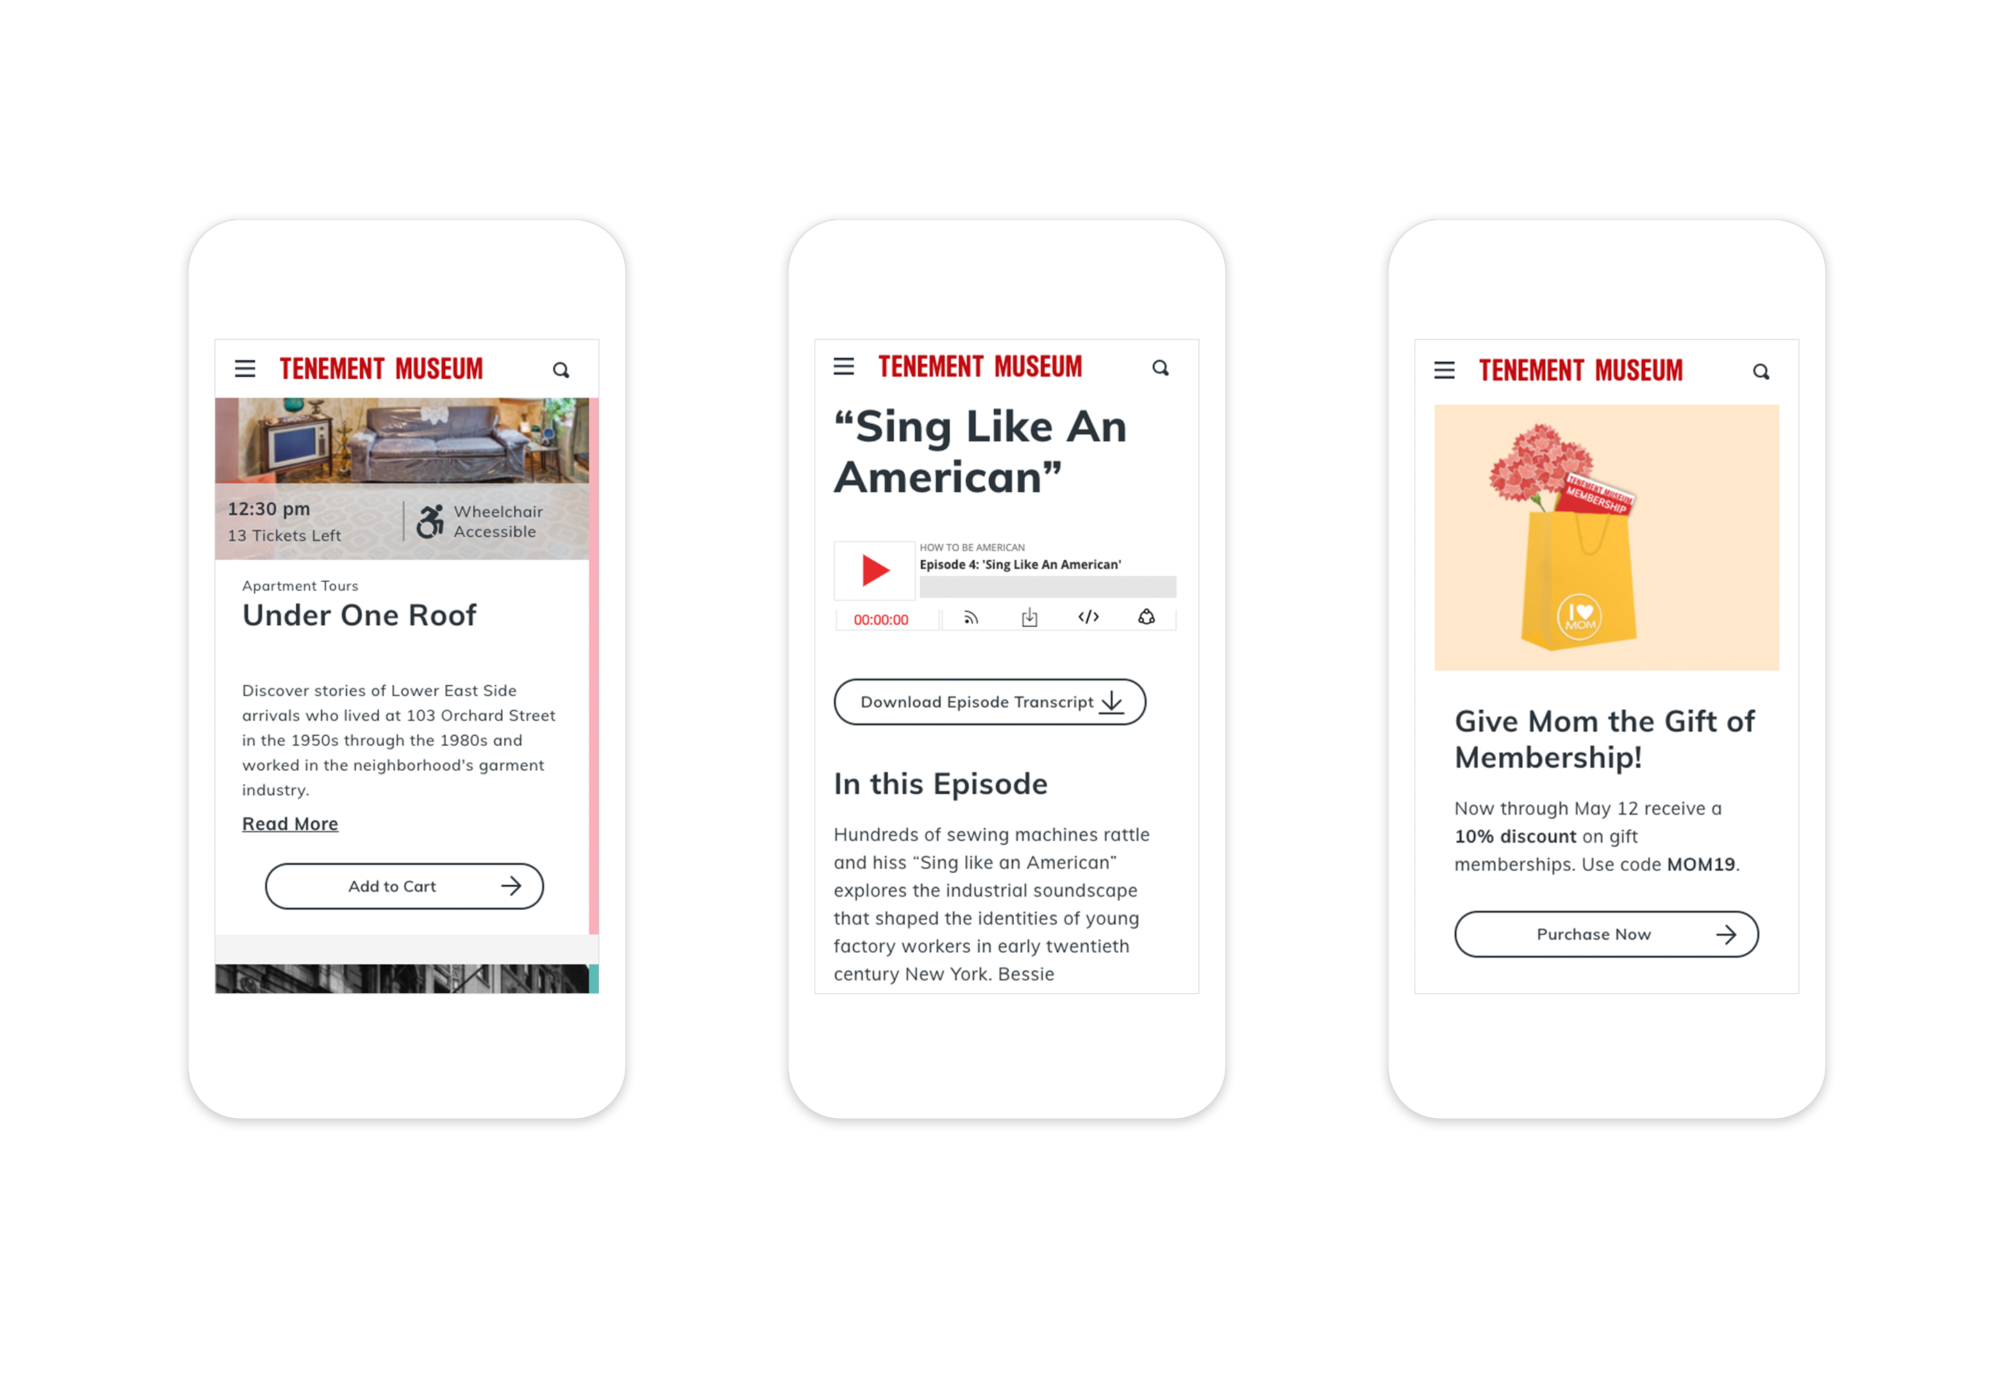 3 responsive mobile webpages showing tour search results, a podcast episode, and a membership promotion.